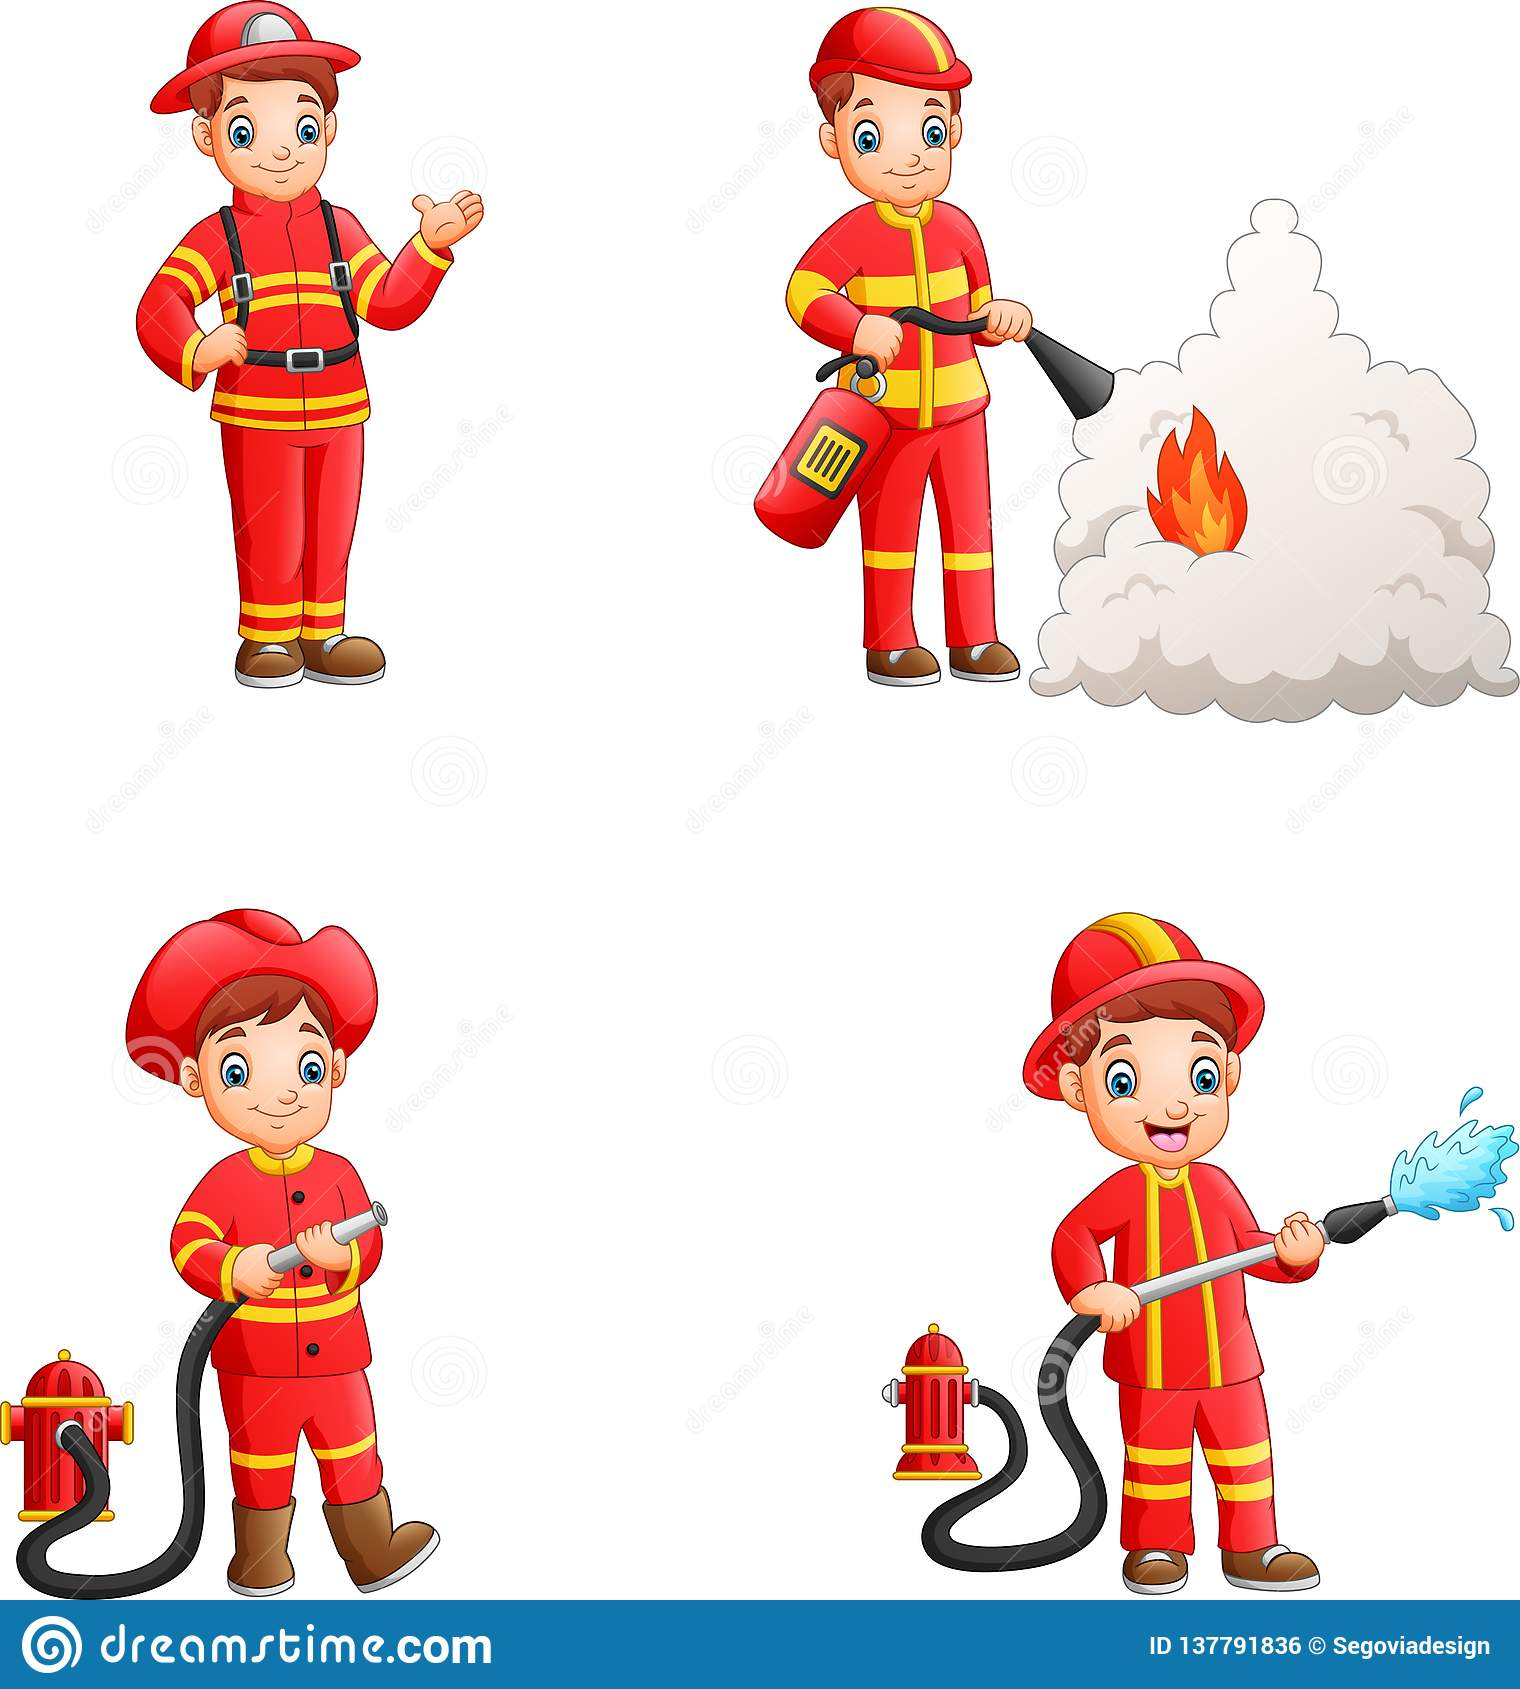 Cartoon firefighters collection with different action poses